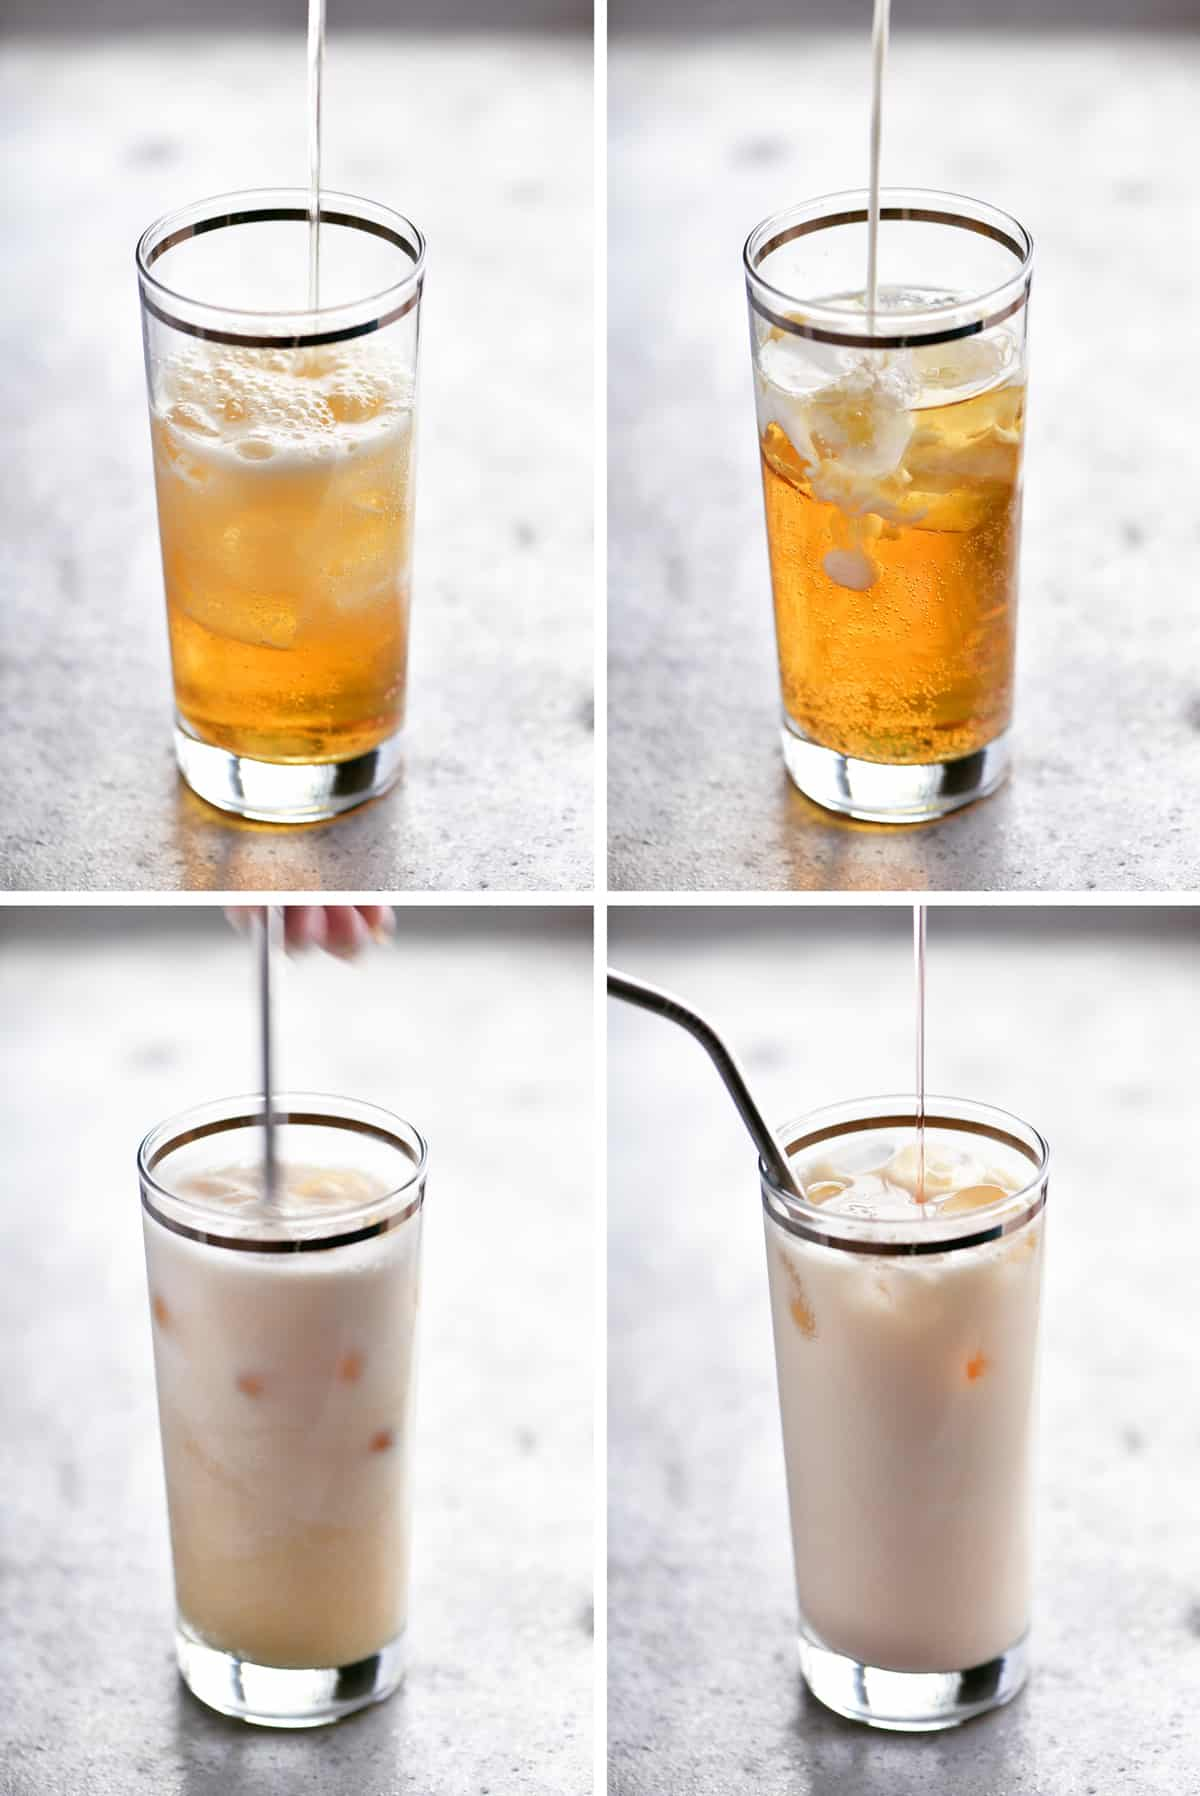 Peaches and Cream RedBull Drink Collage